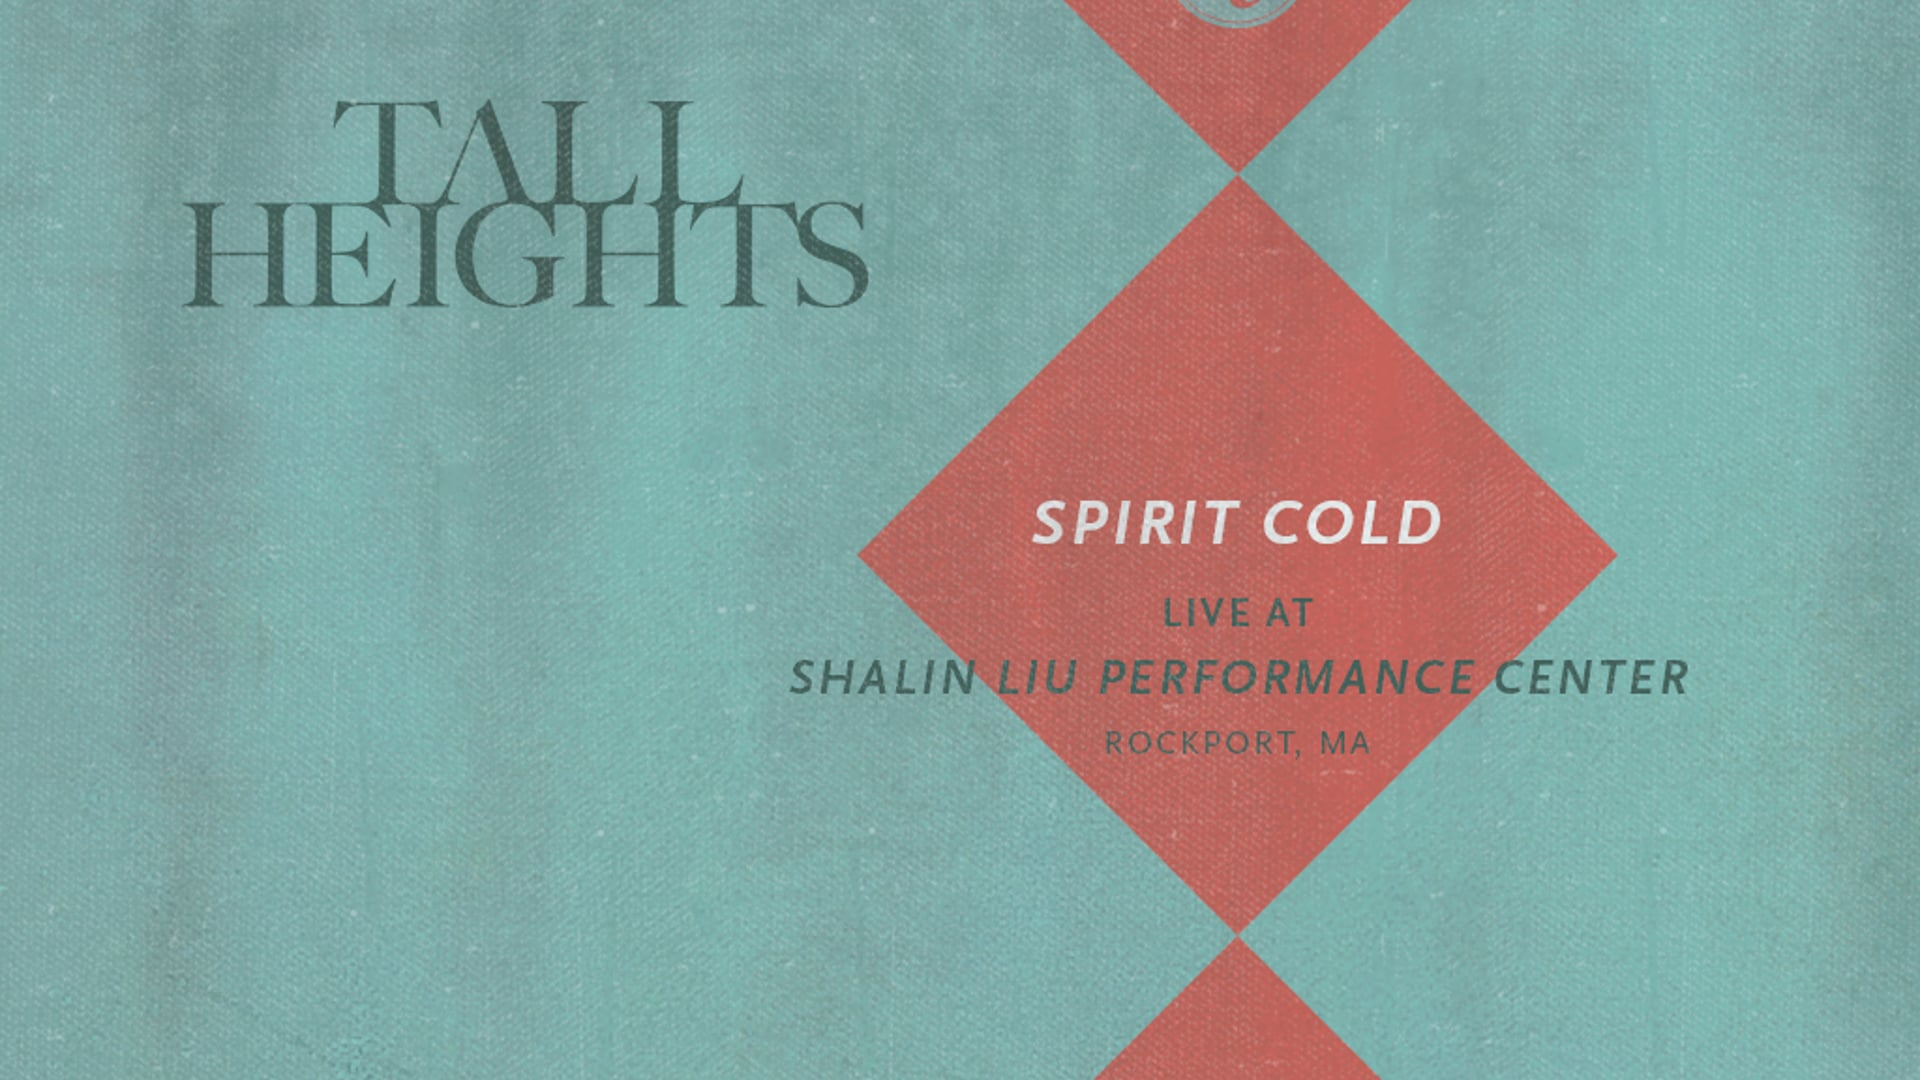 Tall Heights Spirit Cold